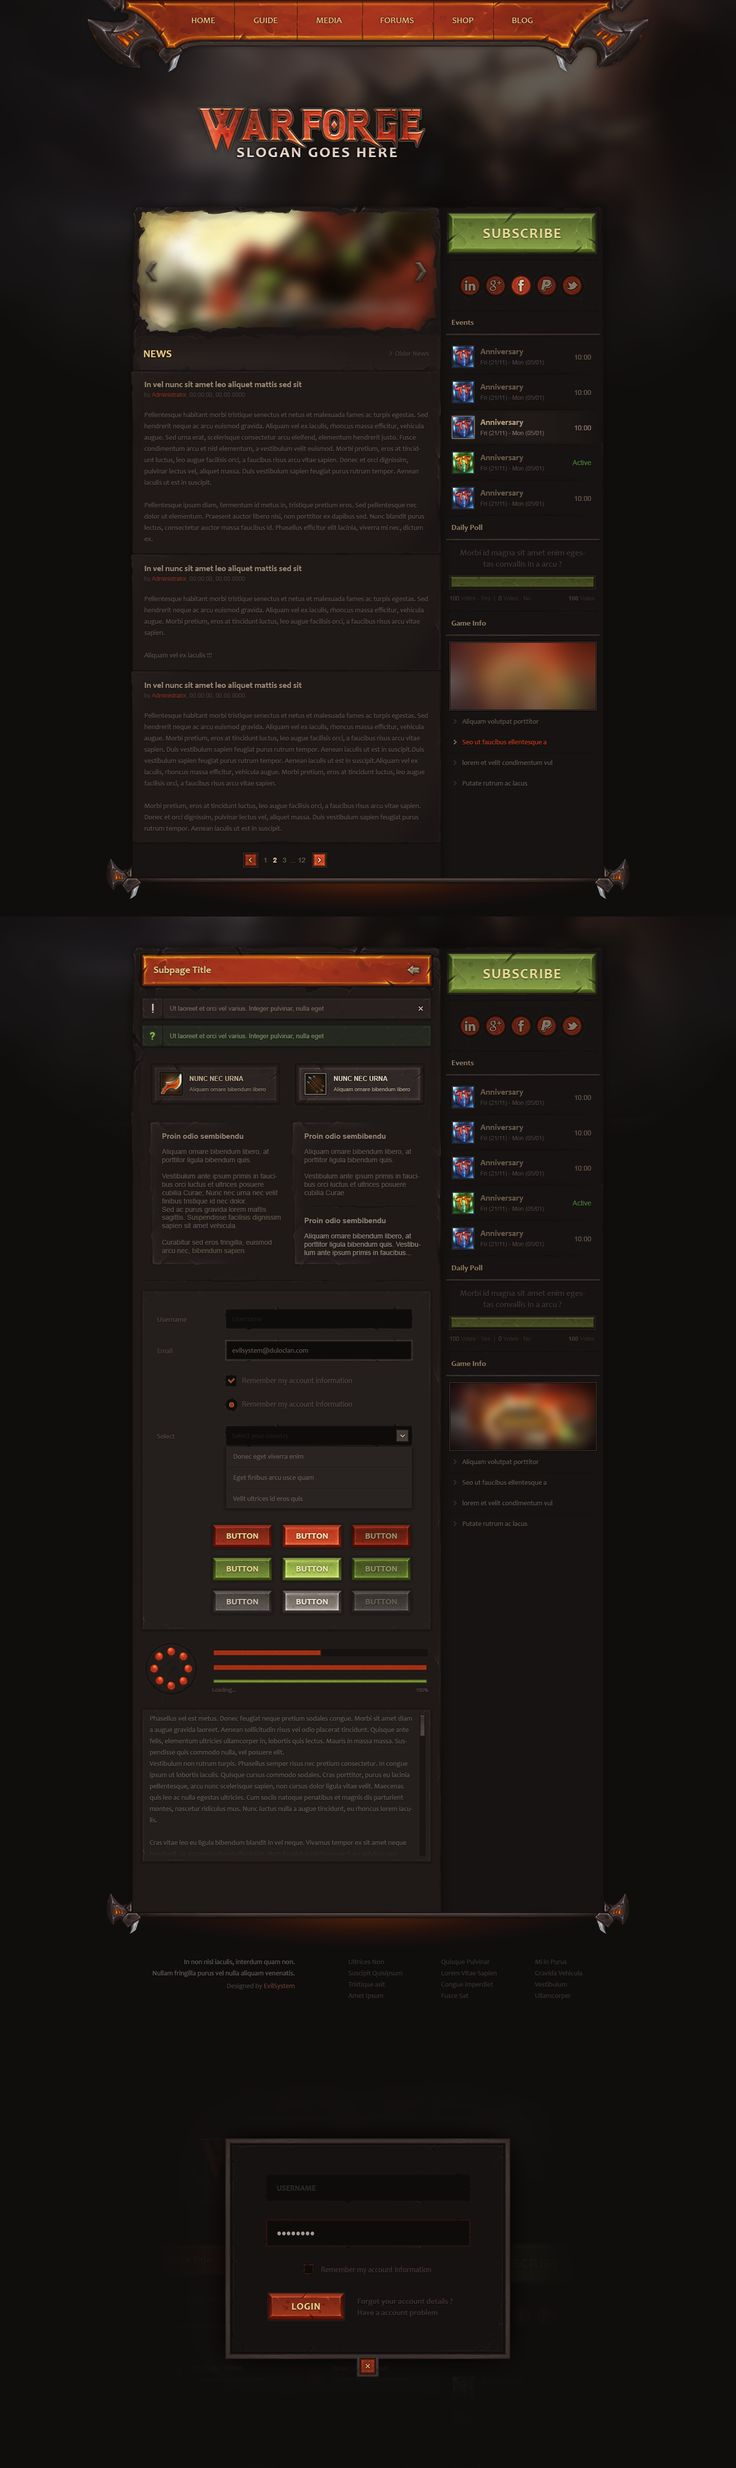 Warforge - Game Website Design by Evil-S on DeviantArt